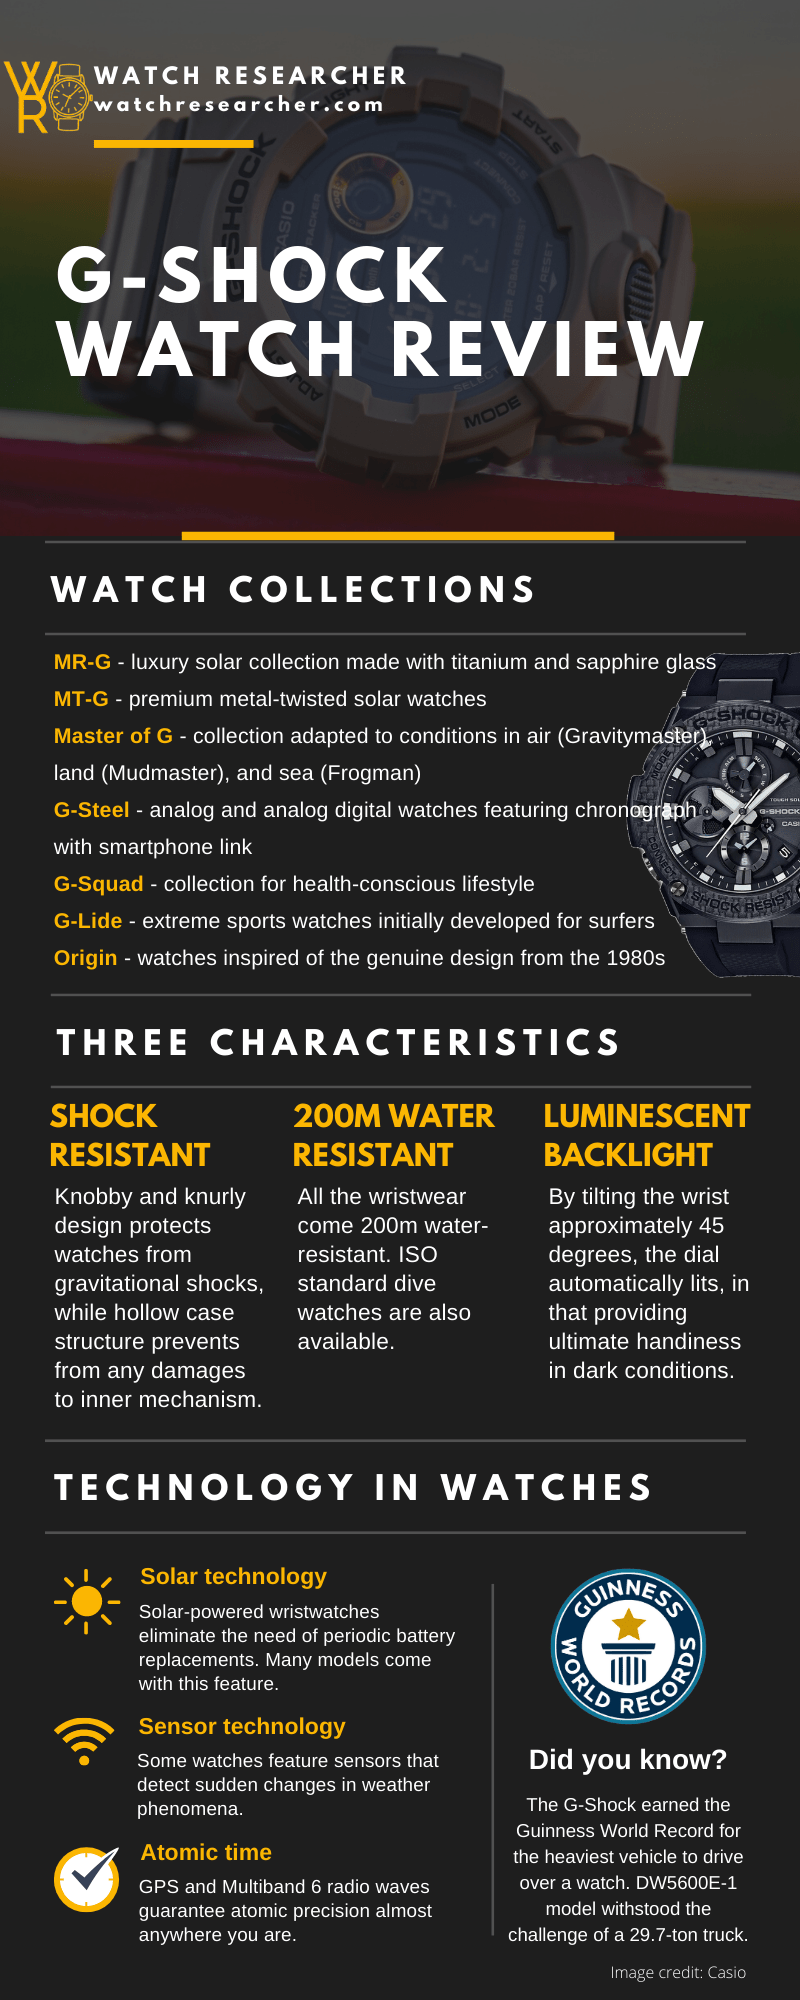 G-Shock watch review